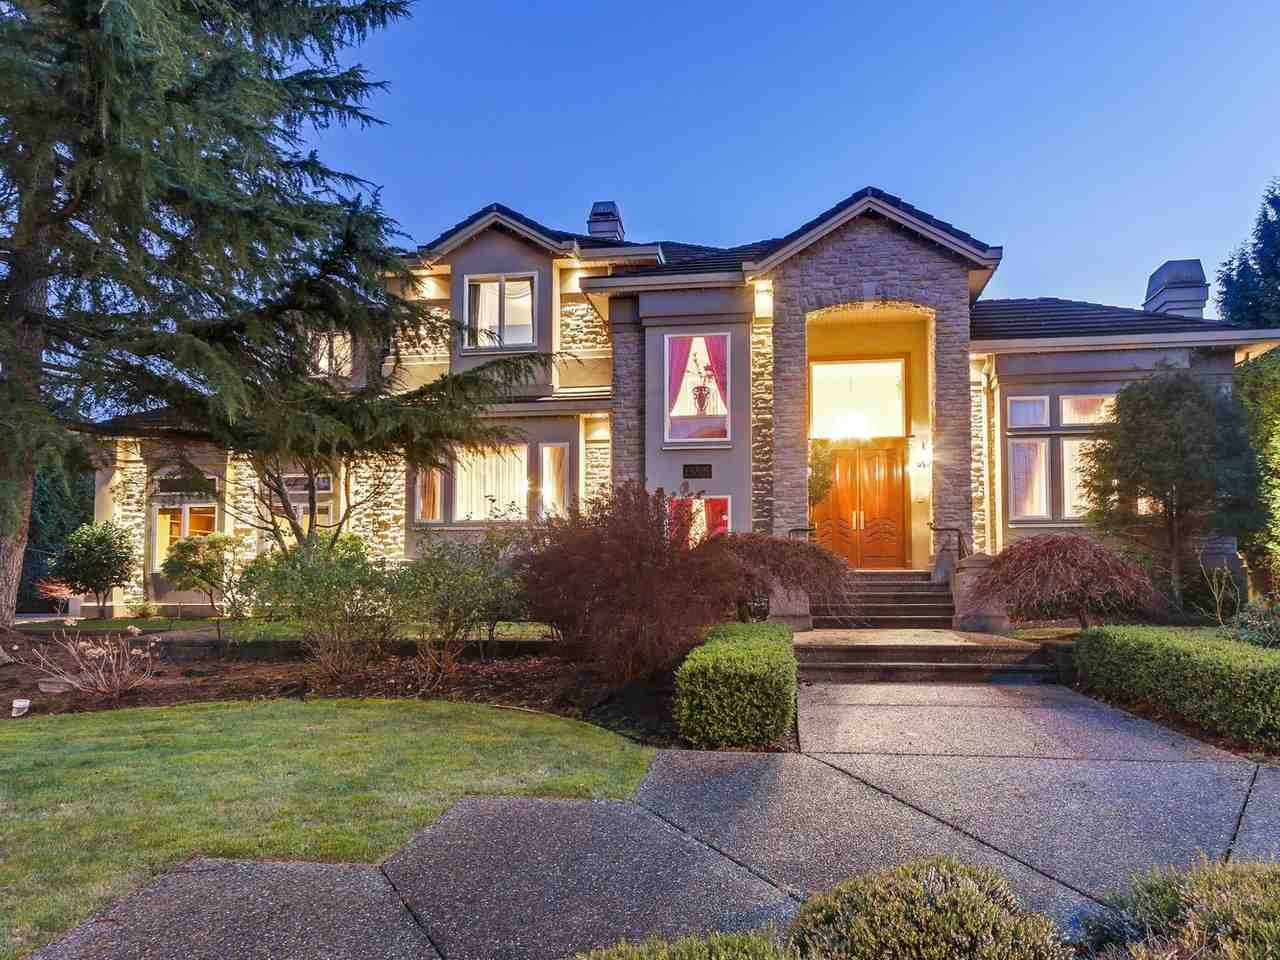 Main Photo: 13818 20A AVENUE in Surrey: Elgin Chantrell House for sale (South Surrey White Rock)  : MLS®# R2332442